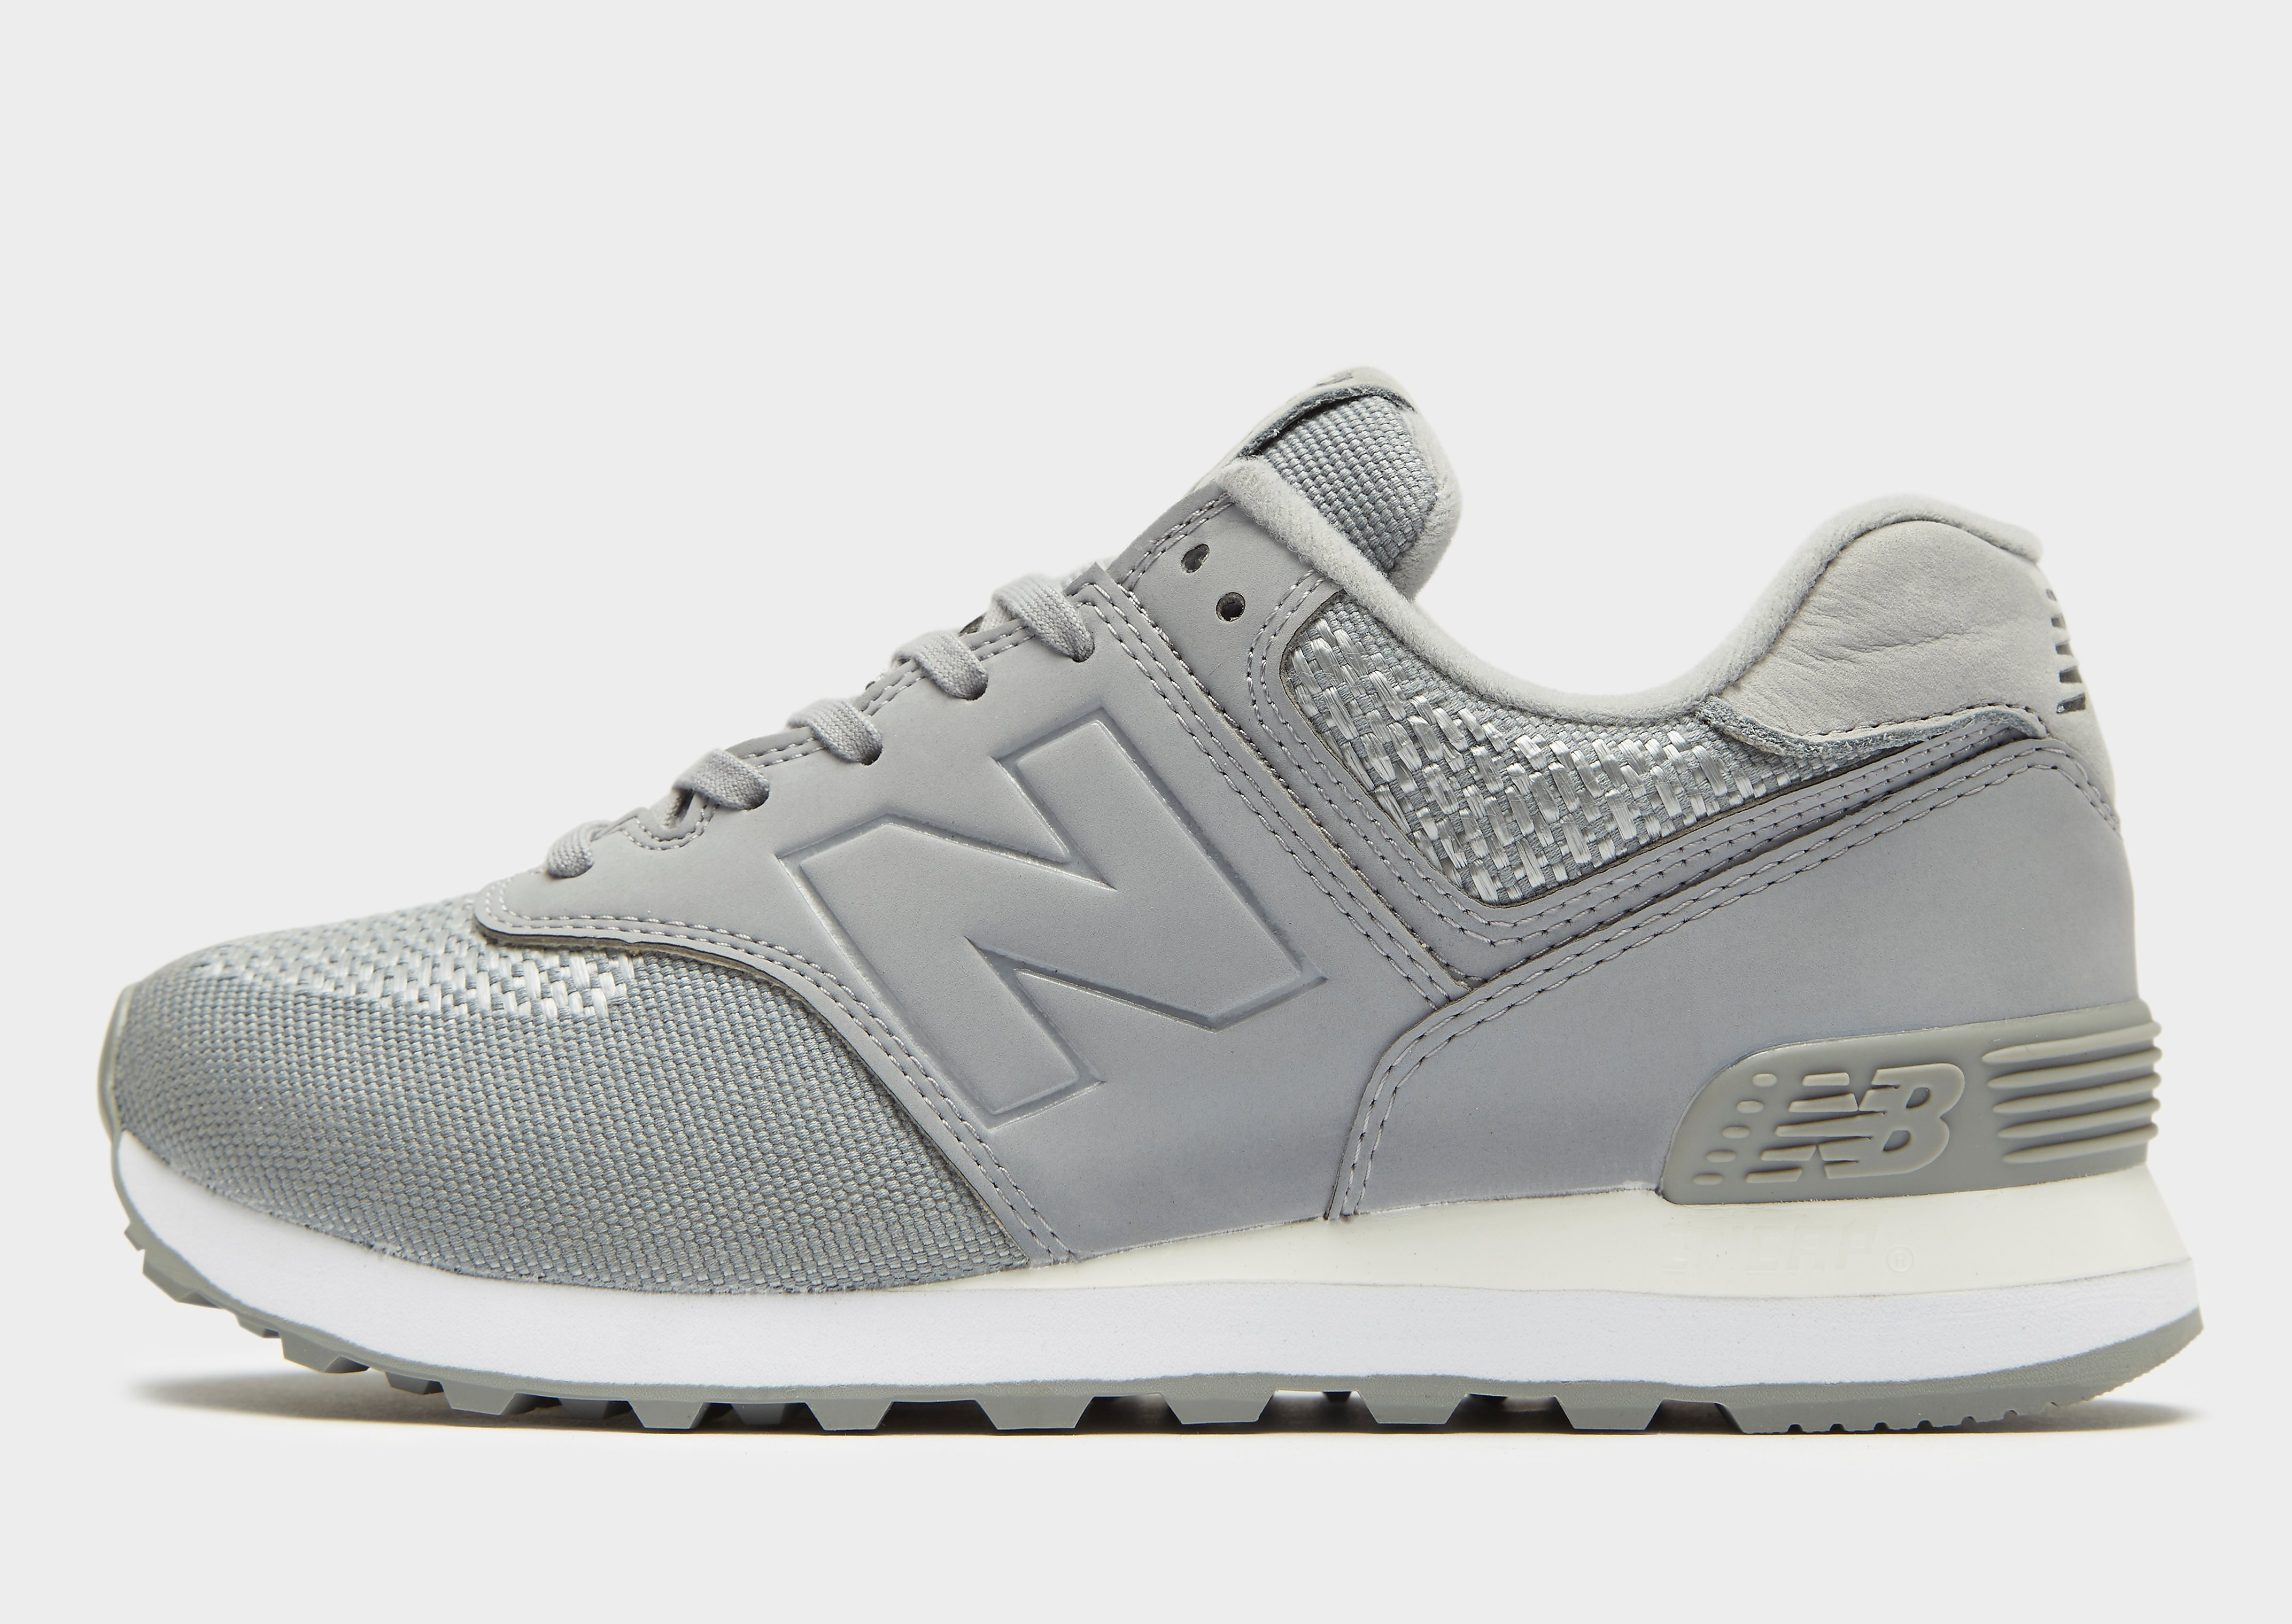 New Balance 574 Weave Women's